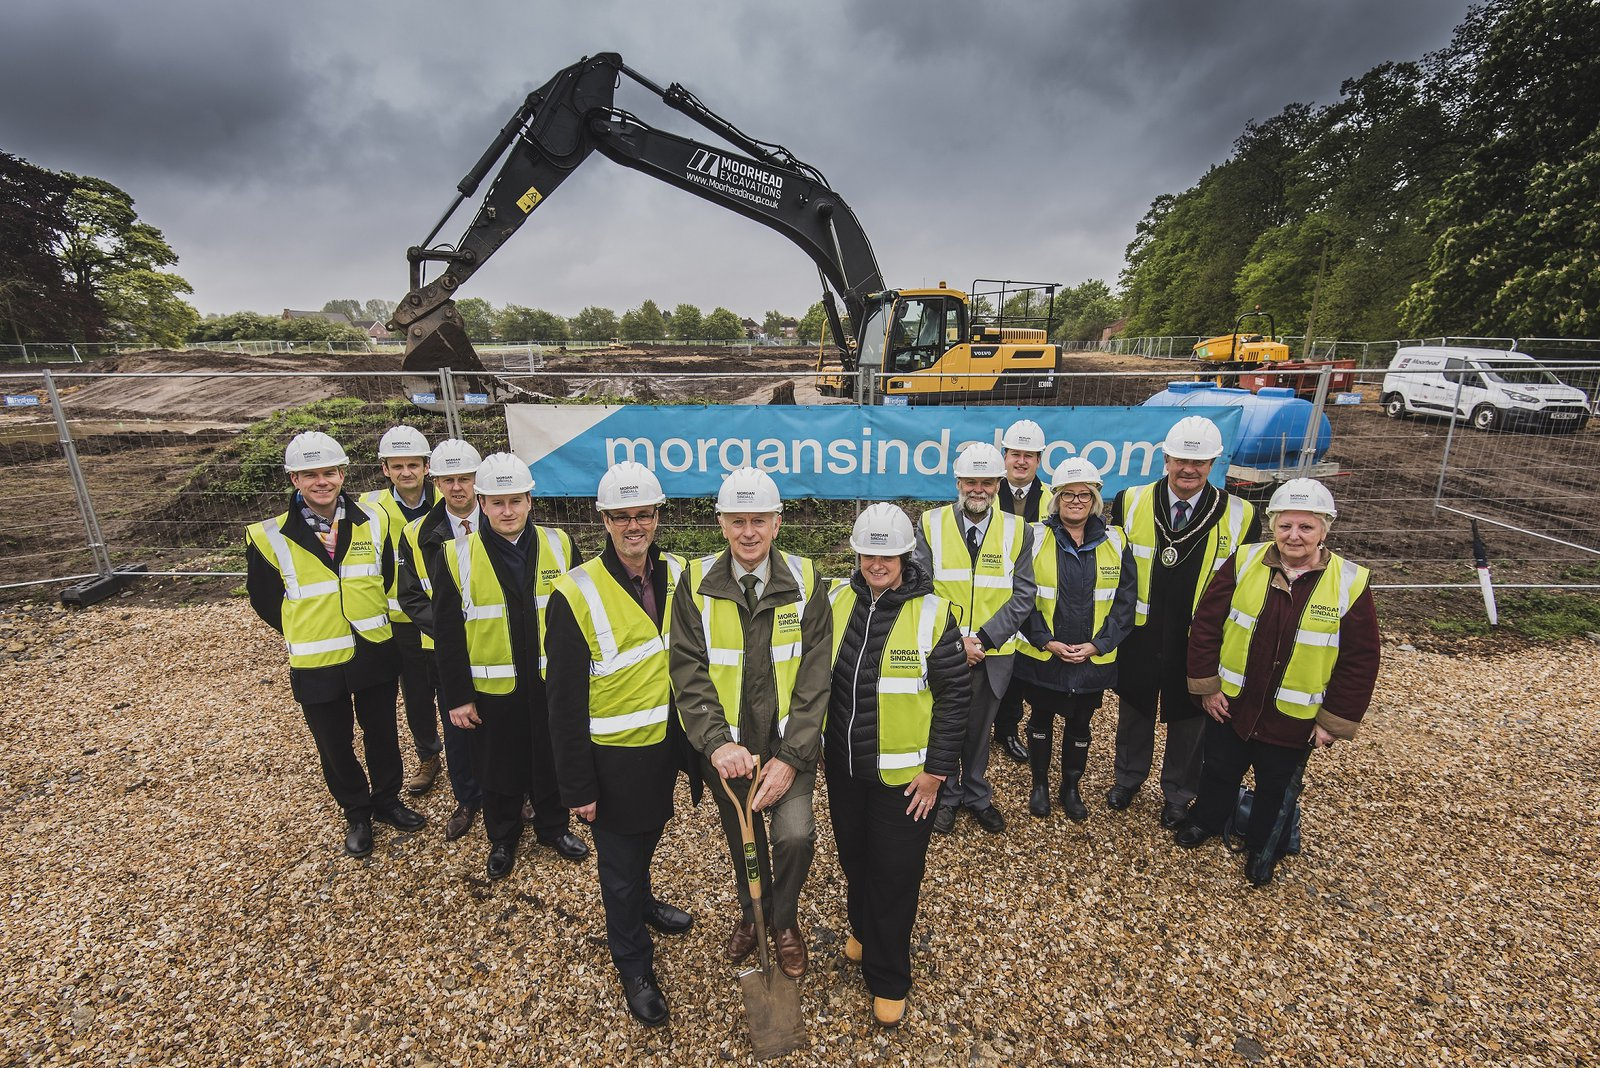 The team pictured at the Market Rasen Groundbreaking event